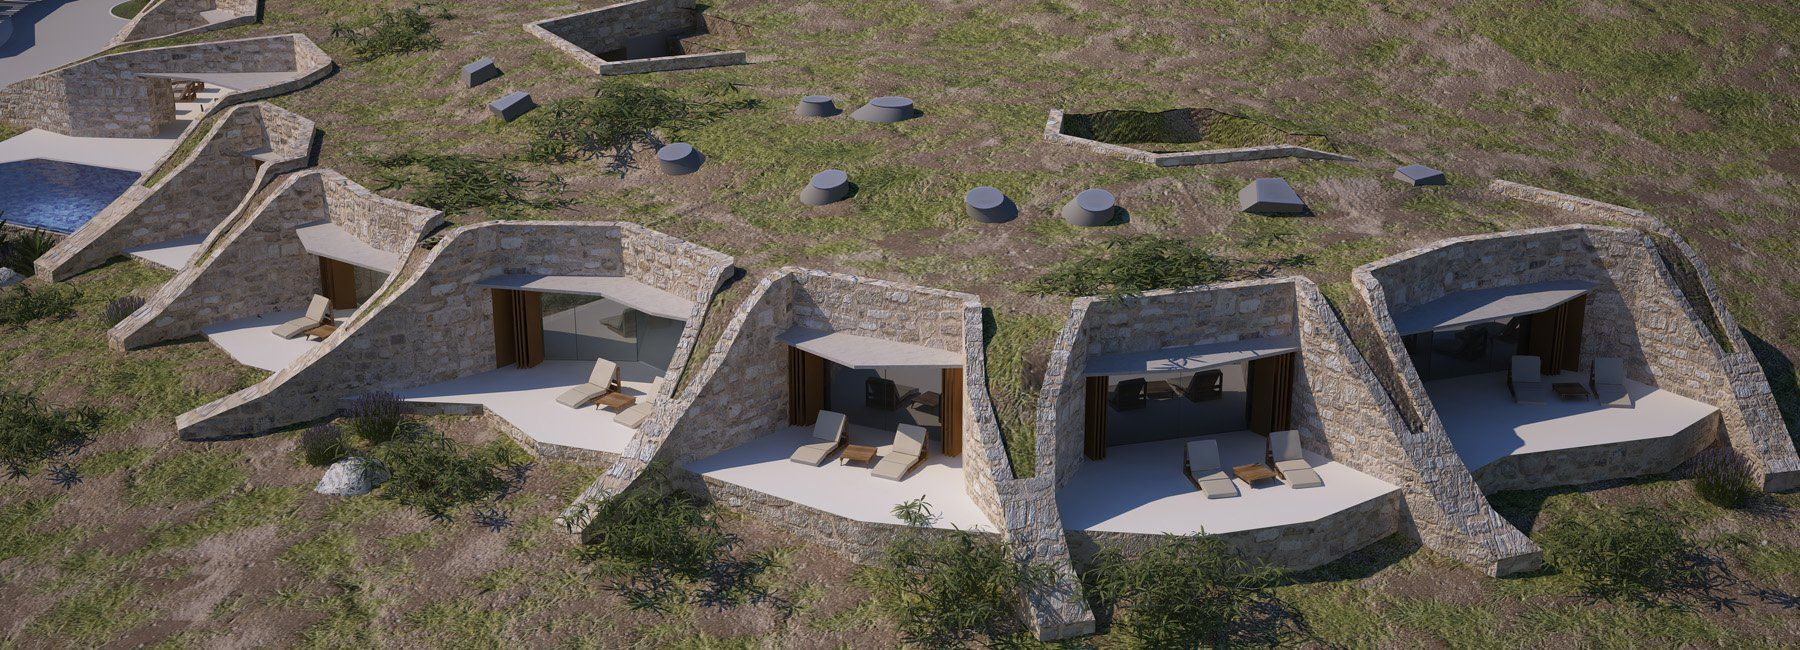 Villa Nai 3.3: Luxury hotel immersed into 100-year-old olive grove